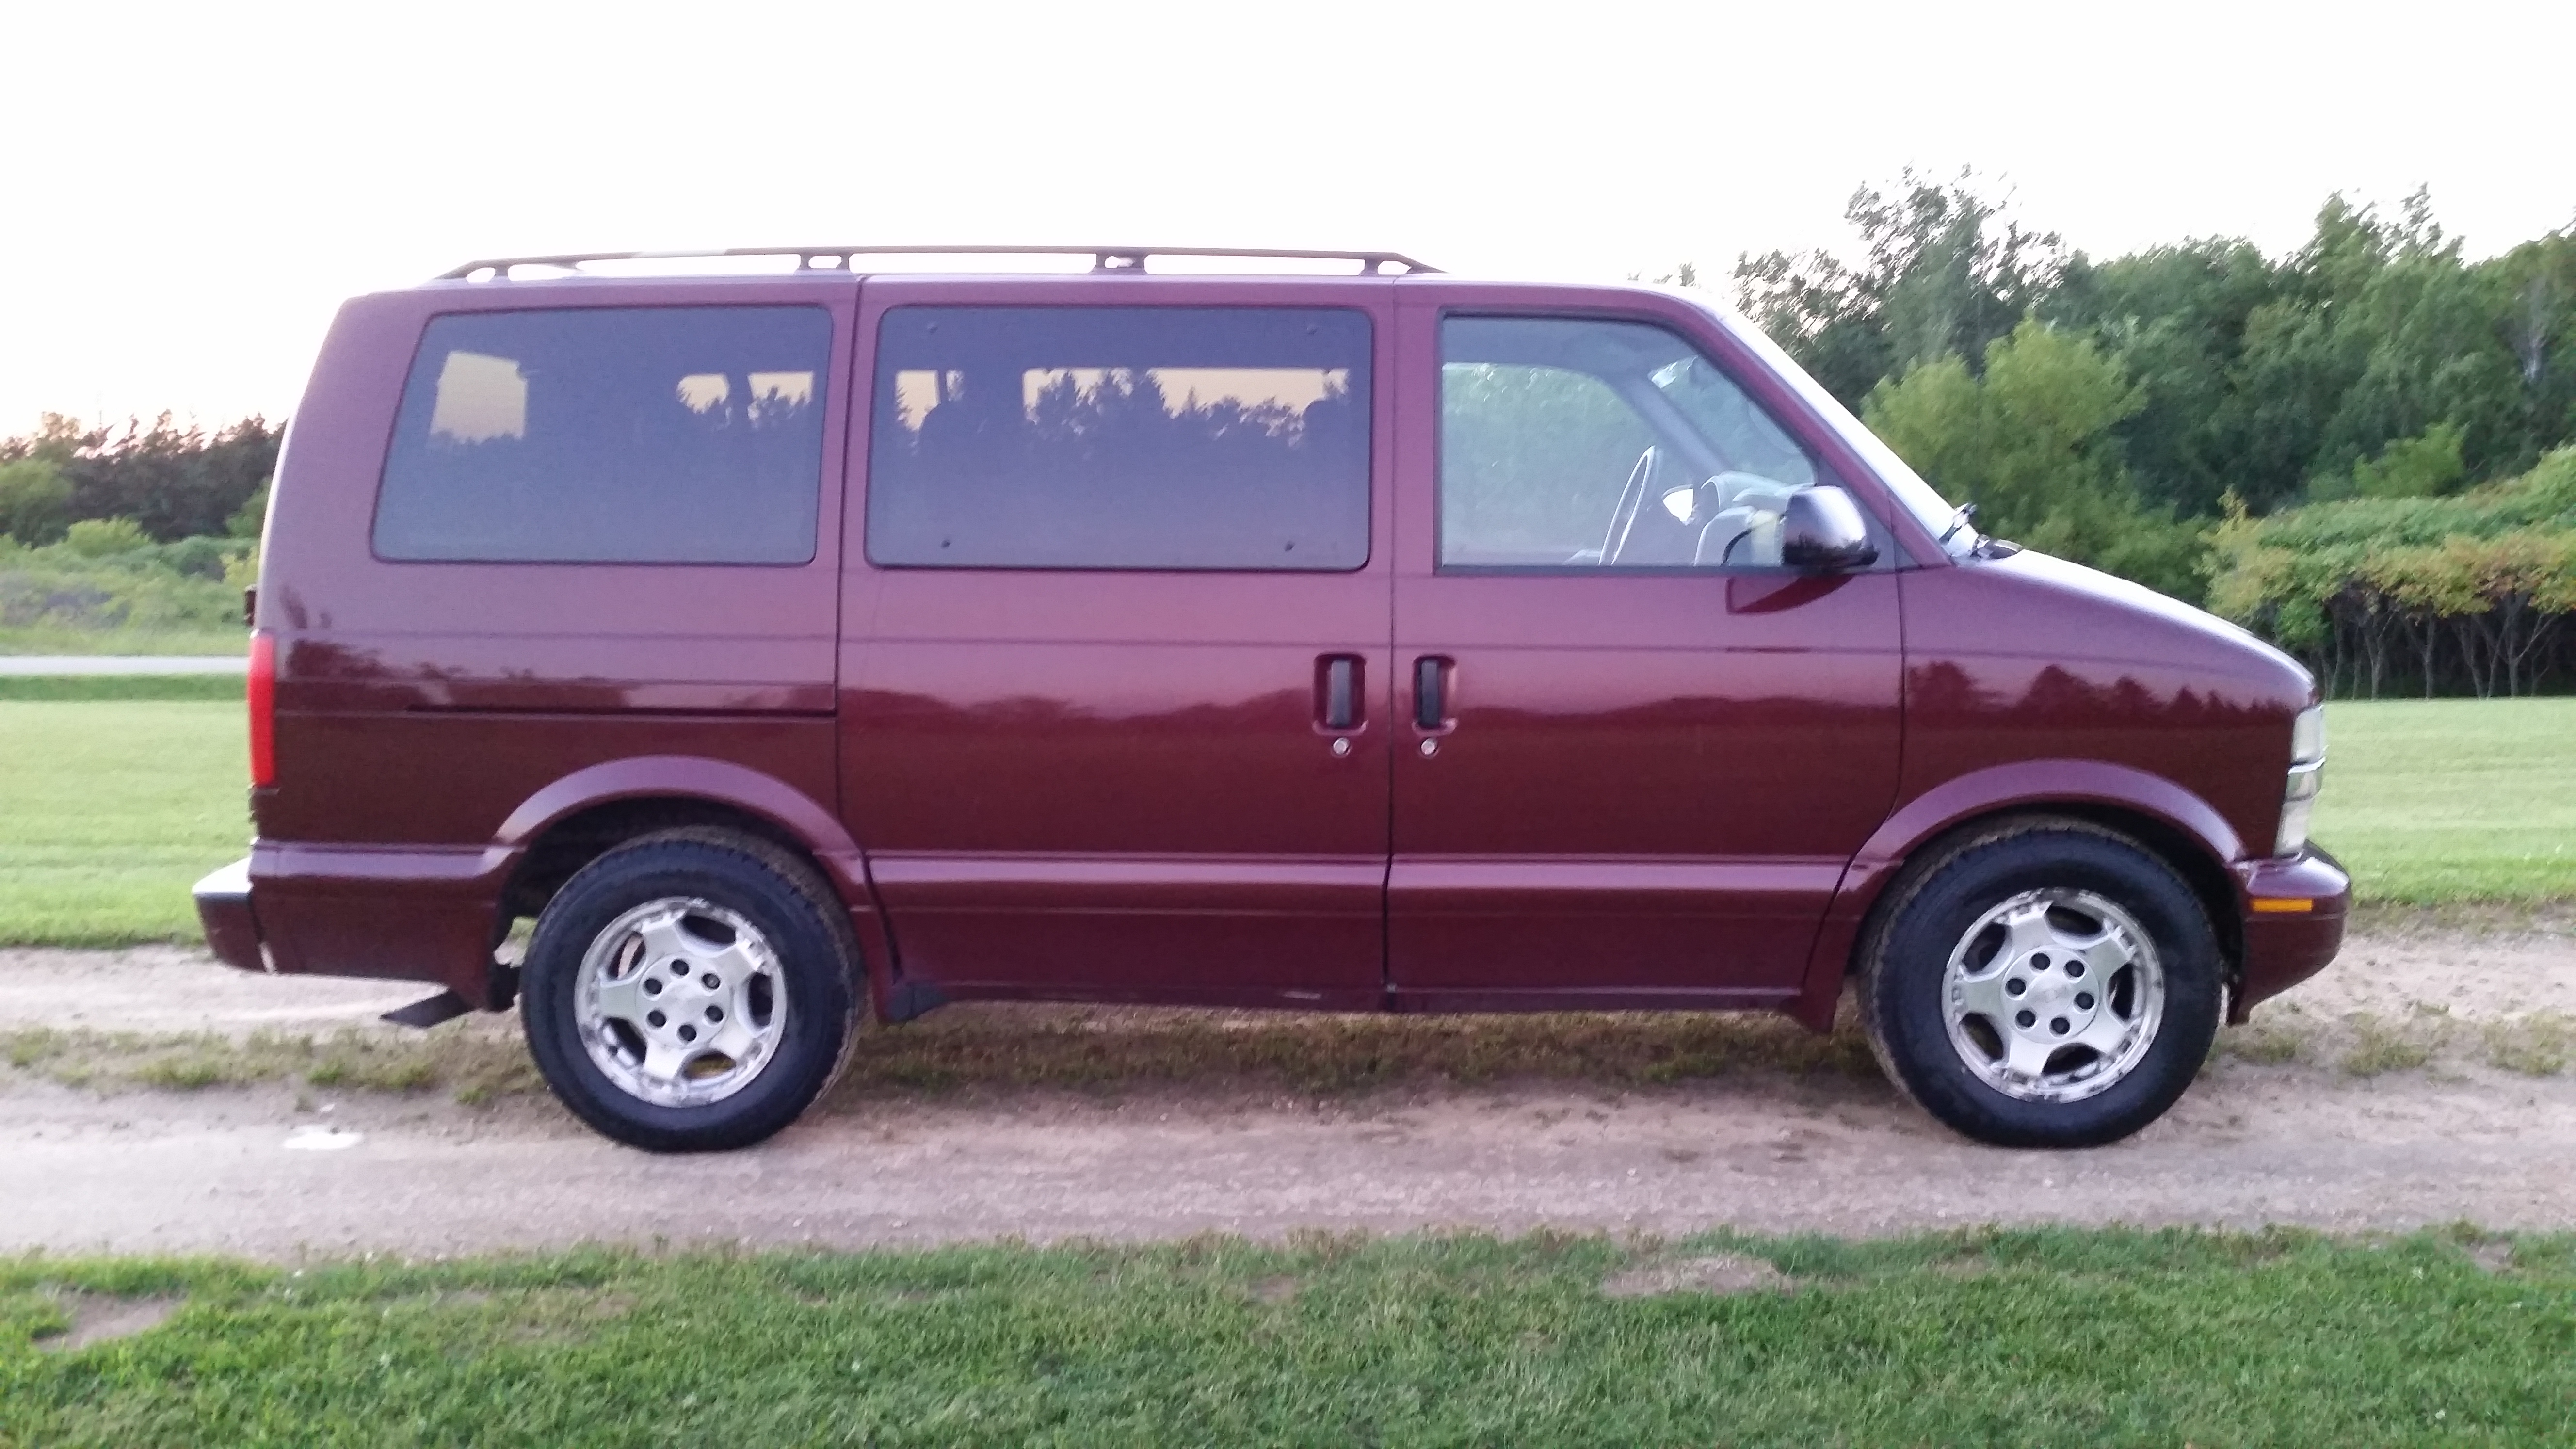 2005 Chev Astro Van for sale